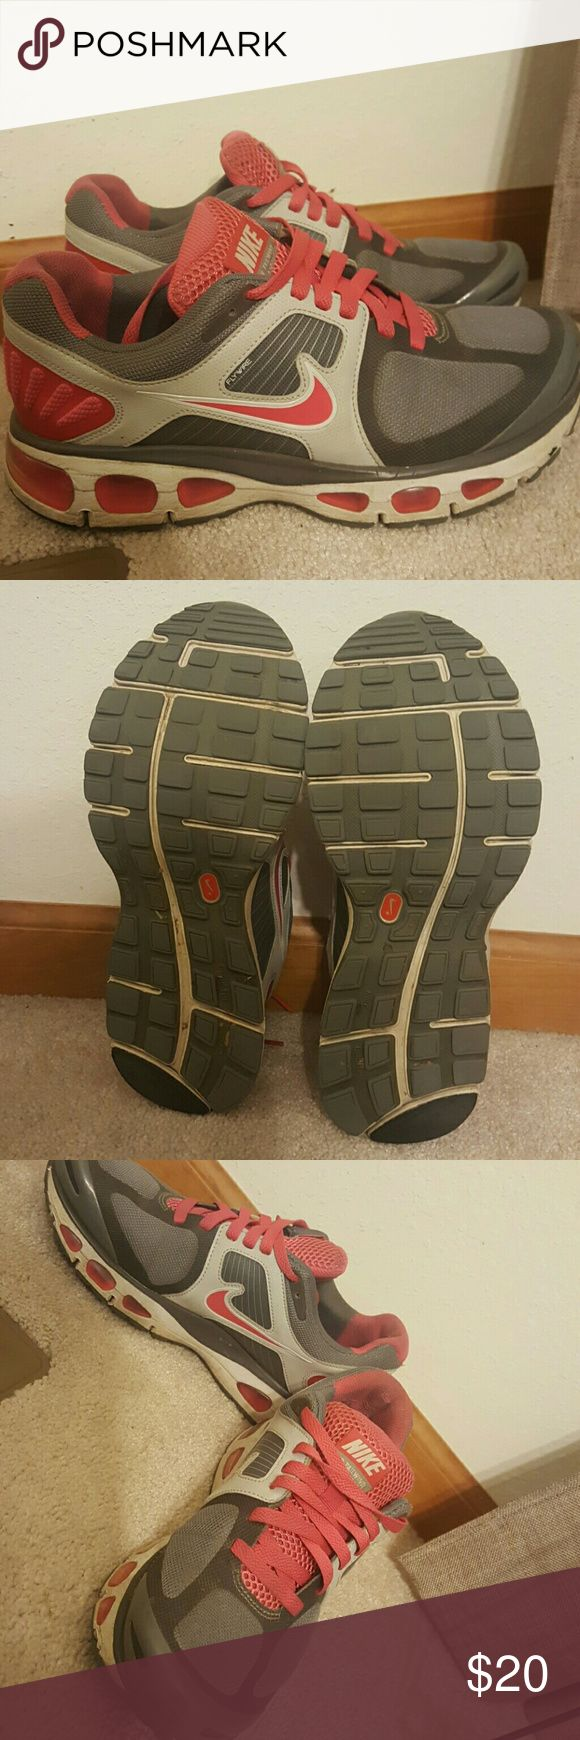 Womens Nike Air Tailwind shoes Used but in still good condition. Very cute! Nike Shoes Athletic Shoes